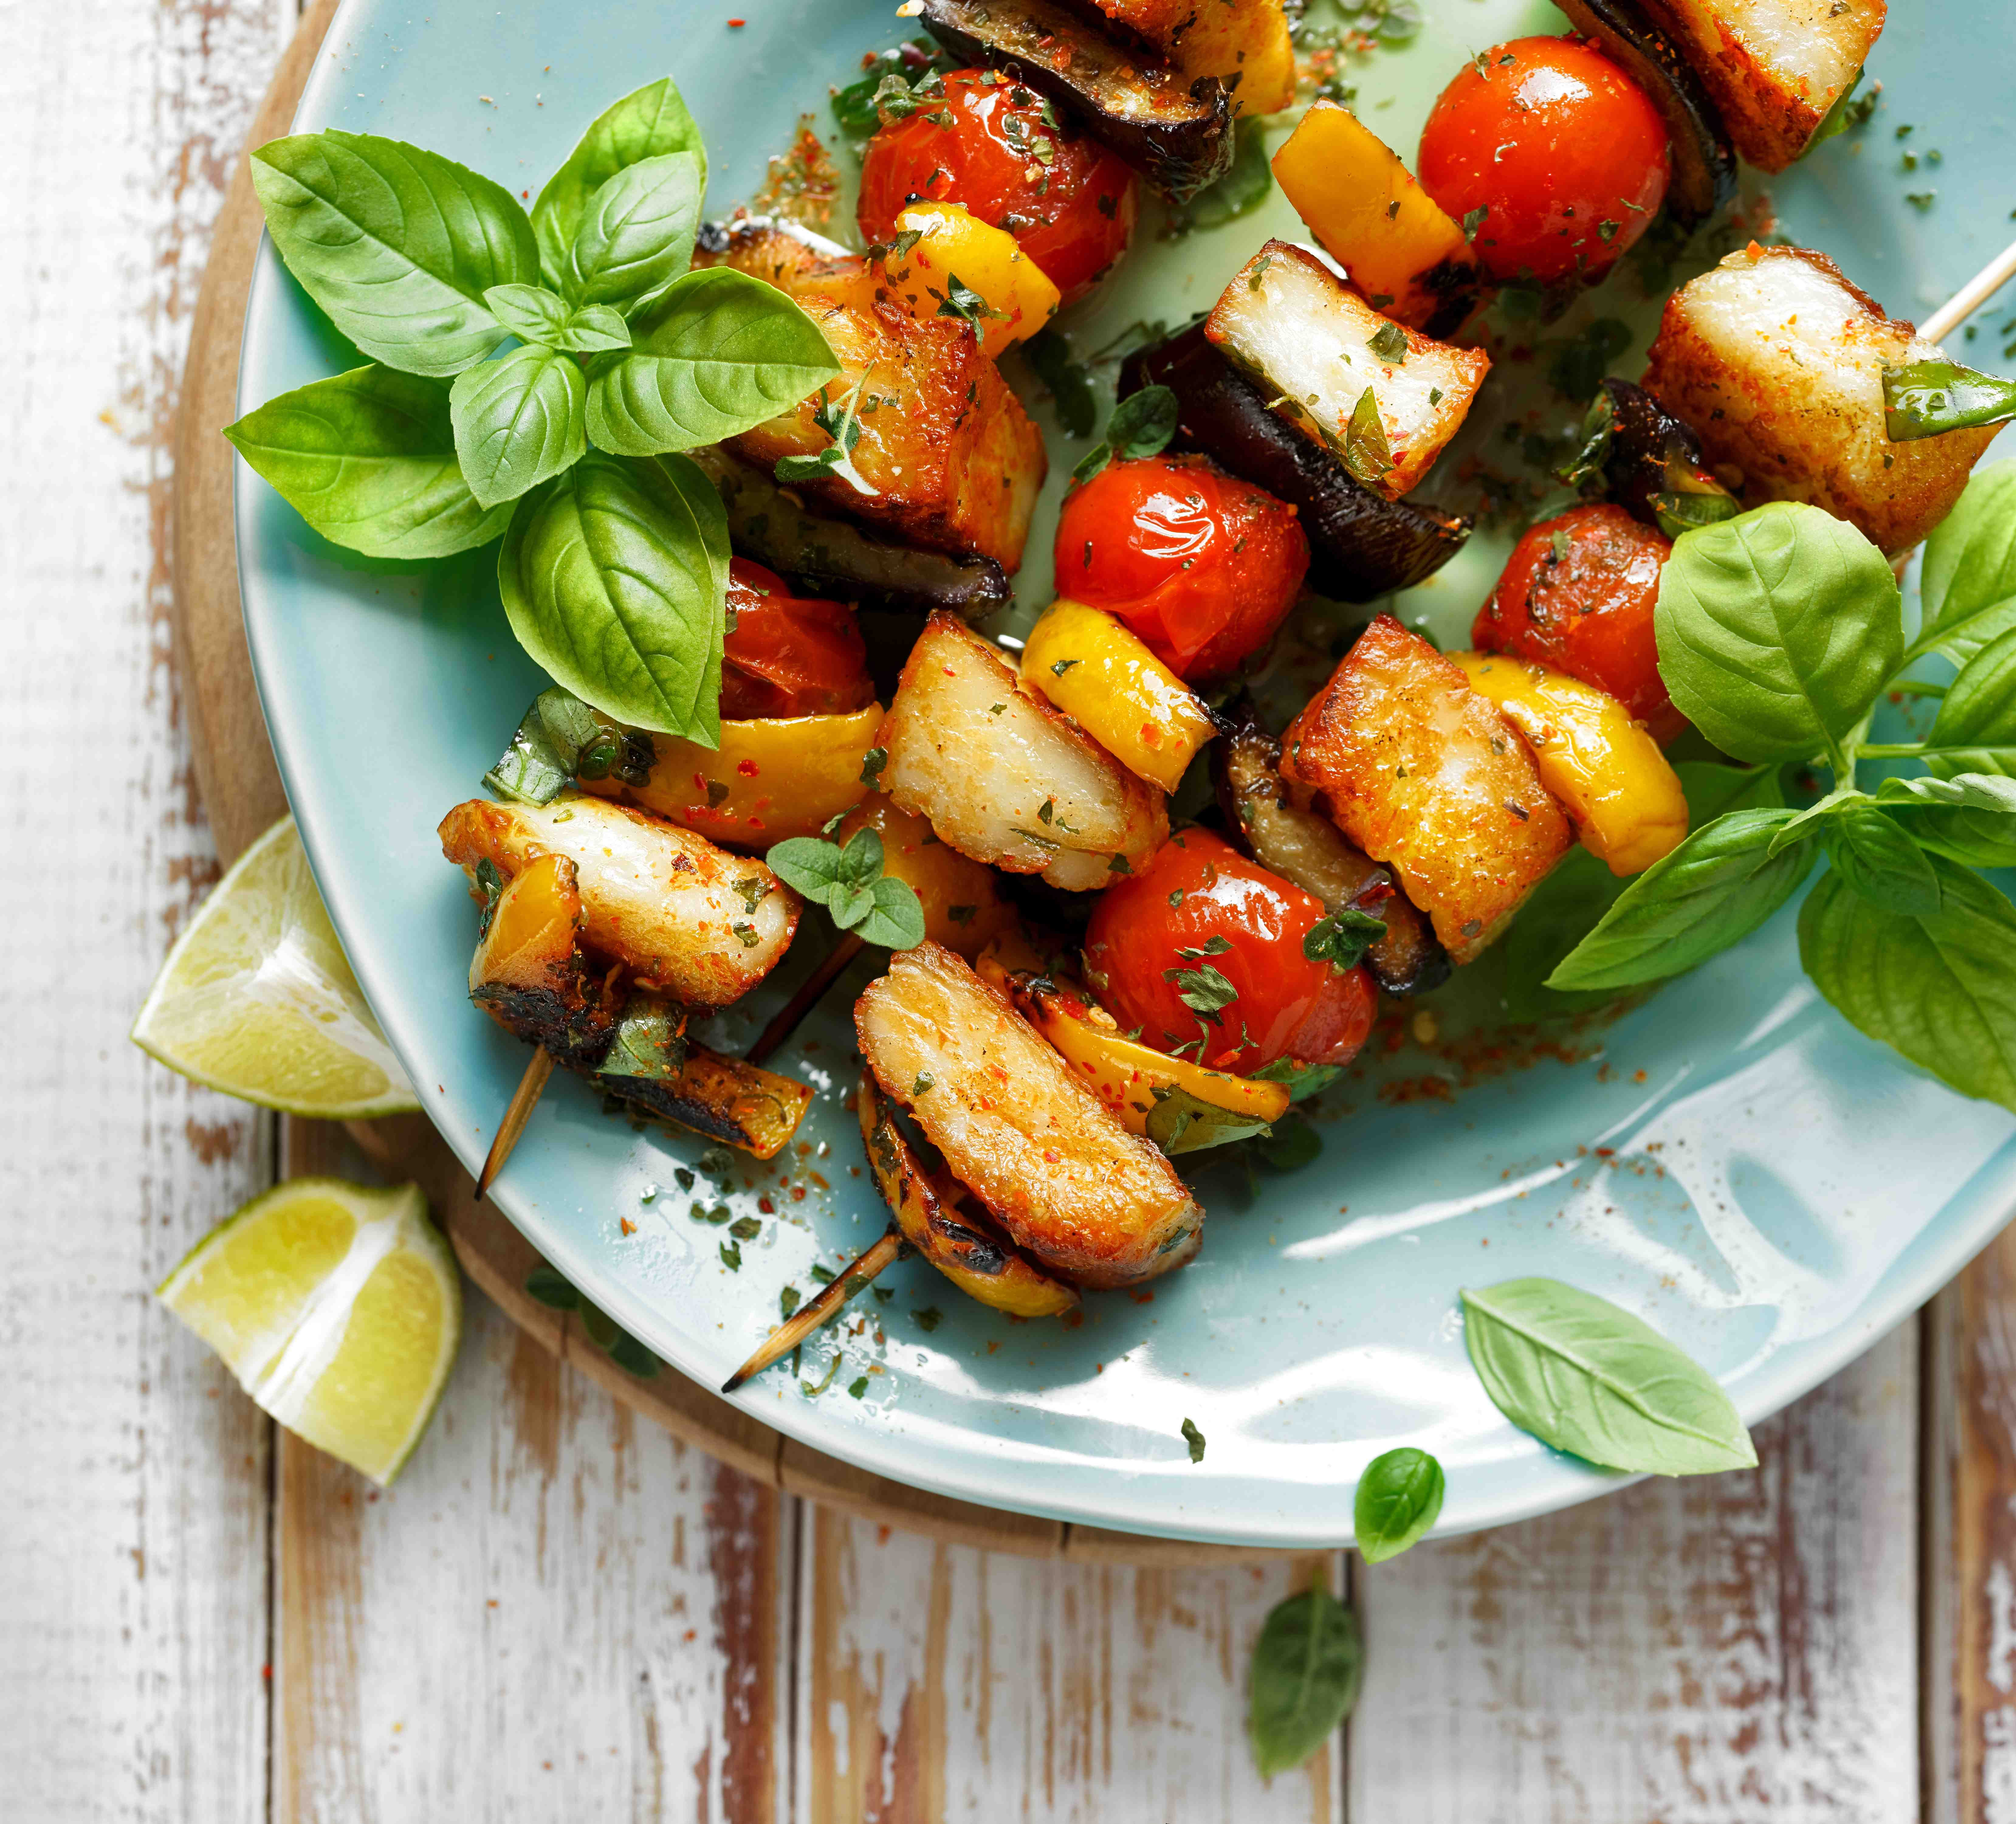 Halloumi and vegetable skewers compressed